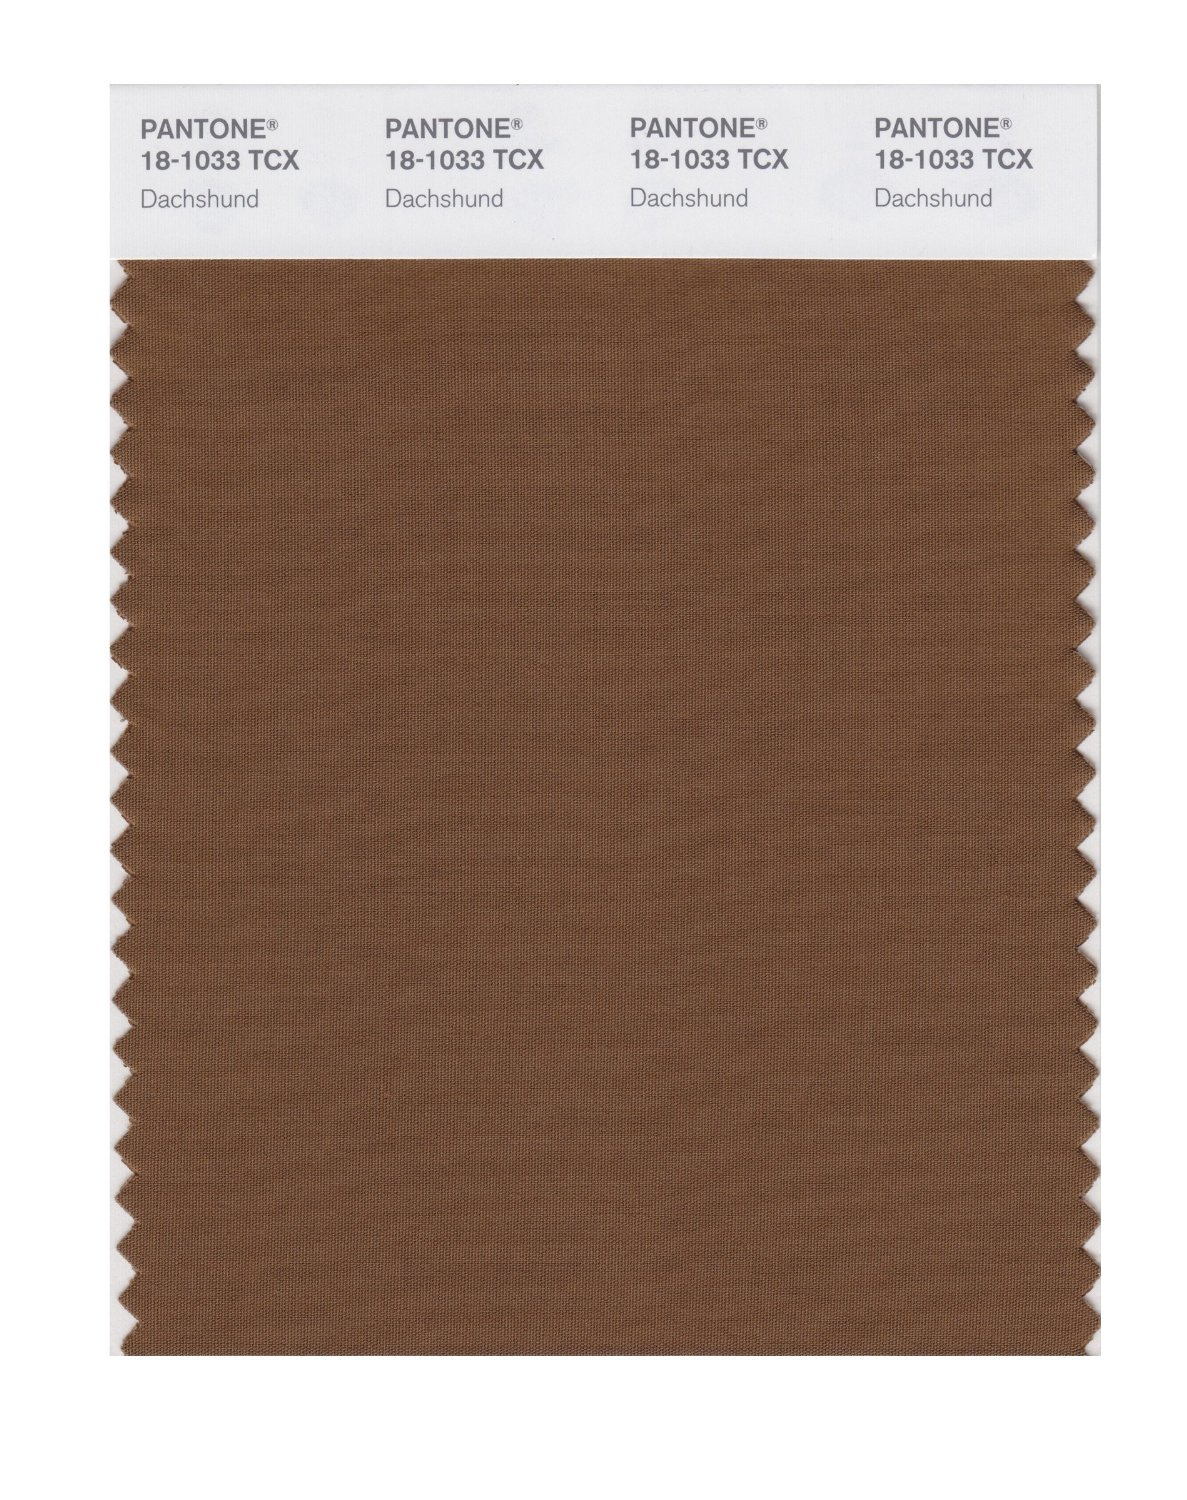 Pantone Smart Swatch 18-1033 Dachshund